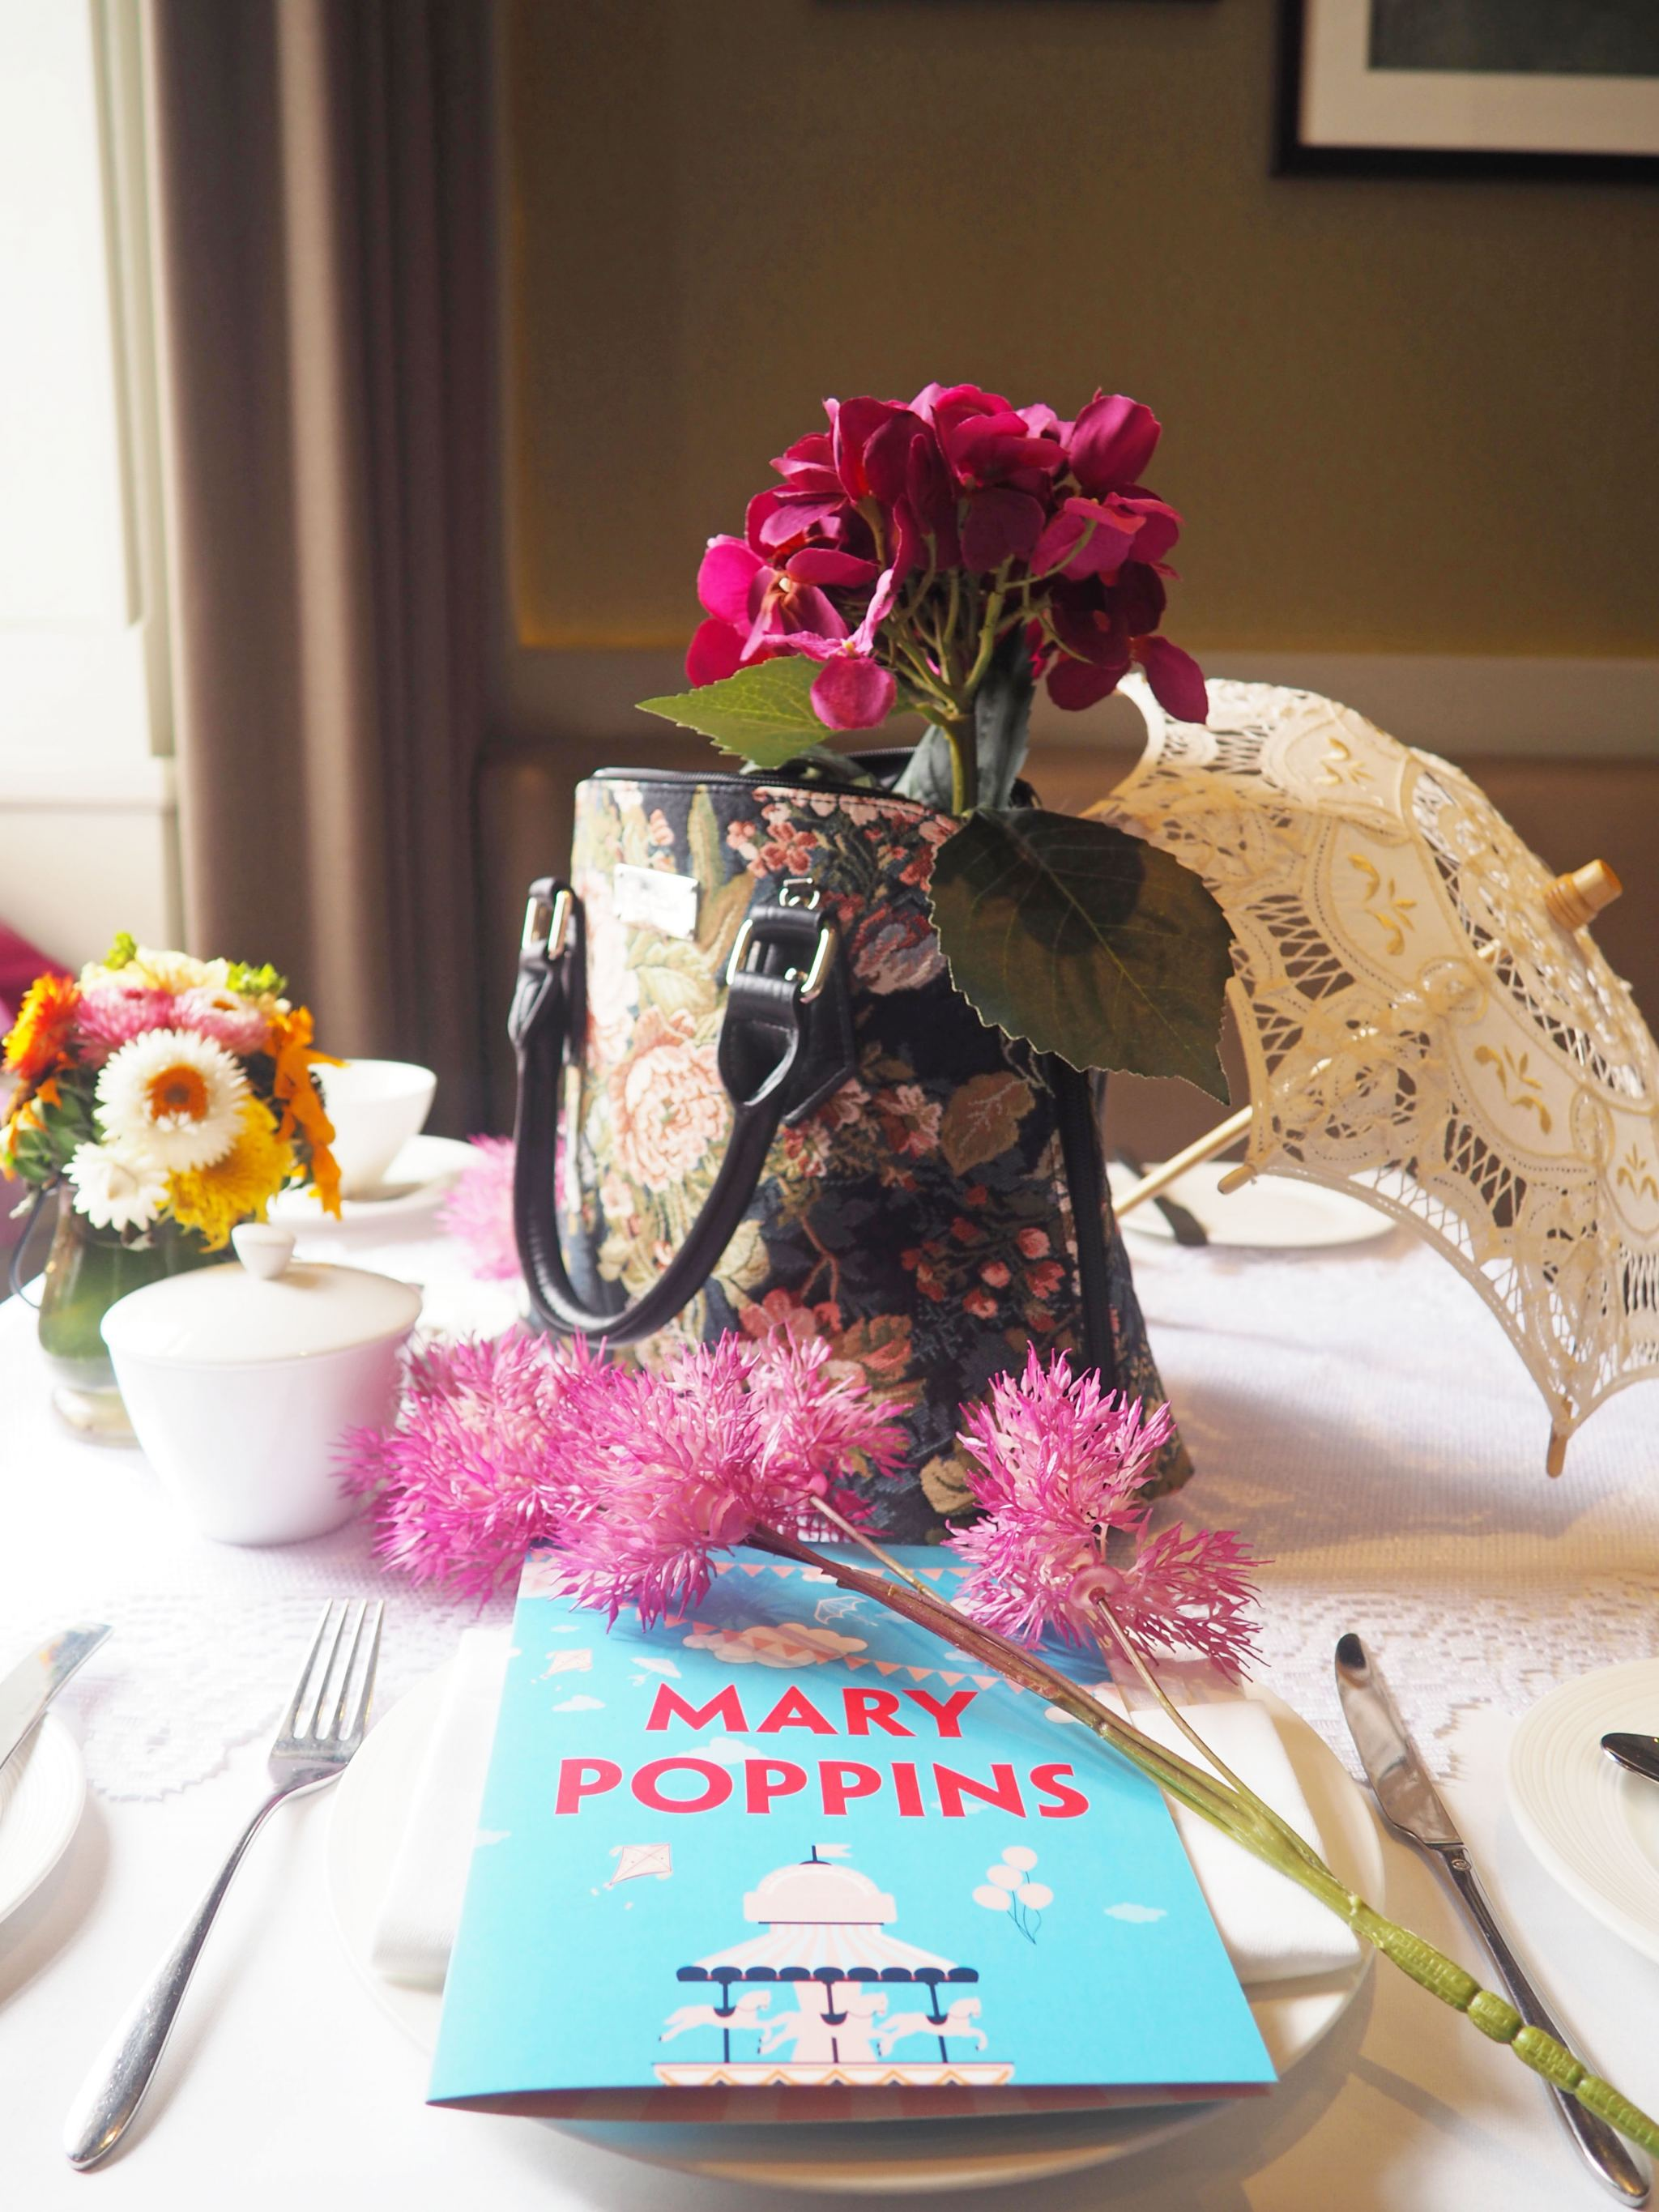 Mary Poppins Afternoon Tea, Taj 51 Buckingham Gate